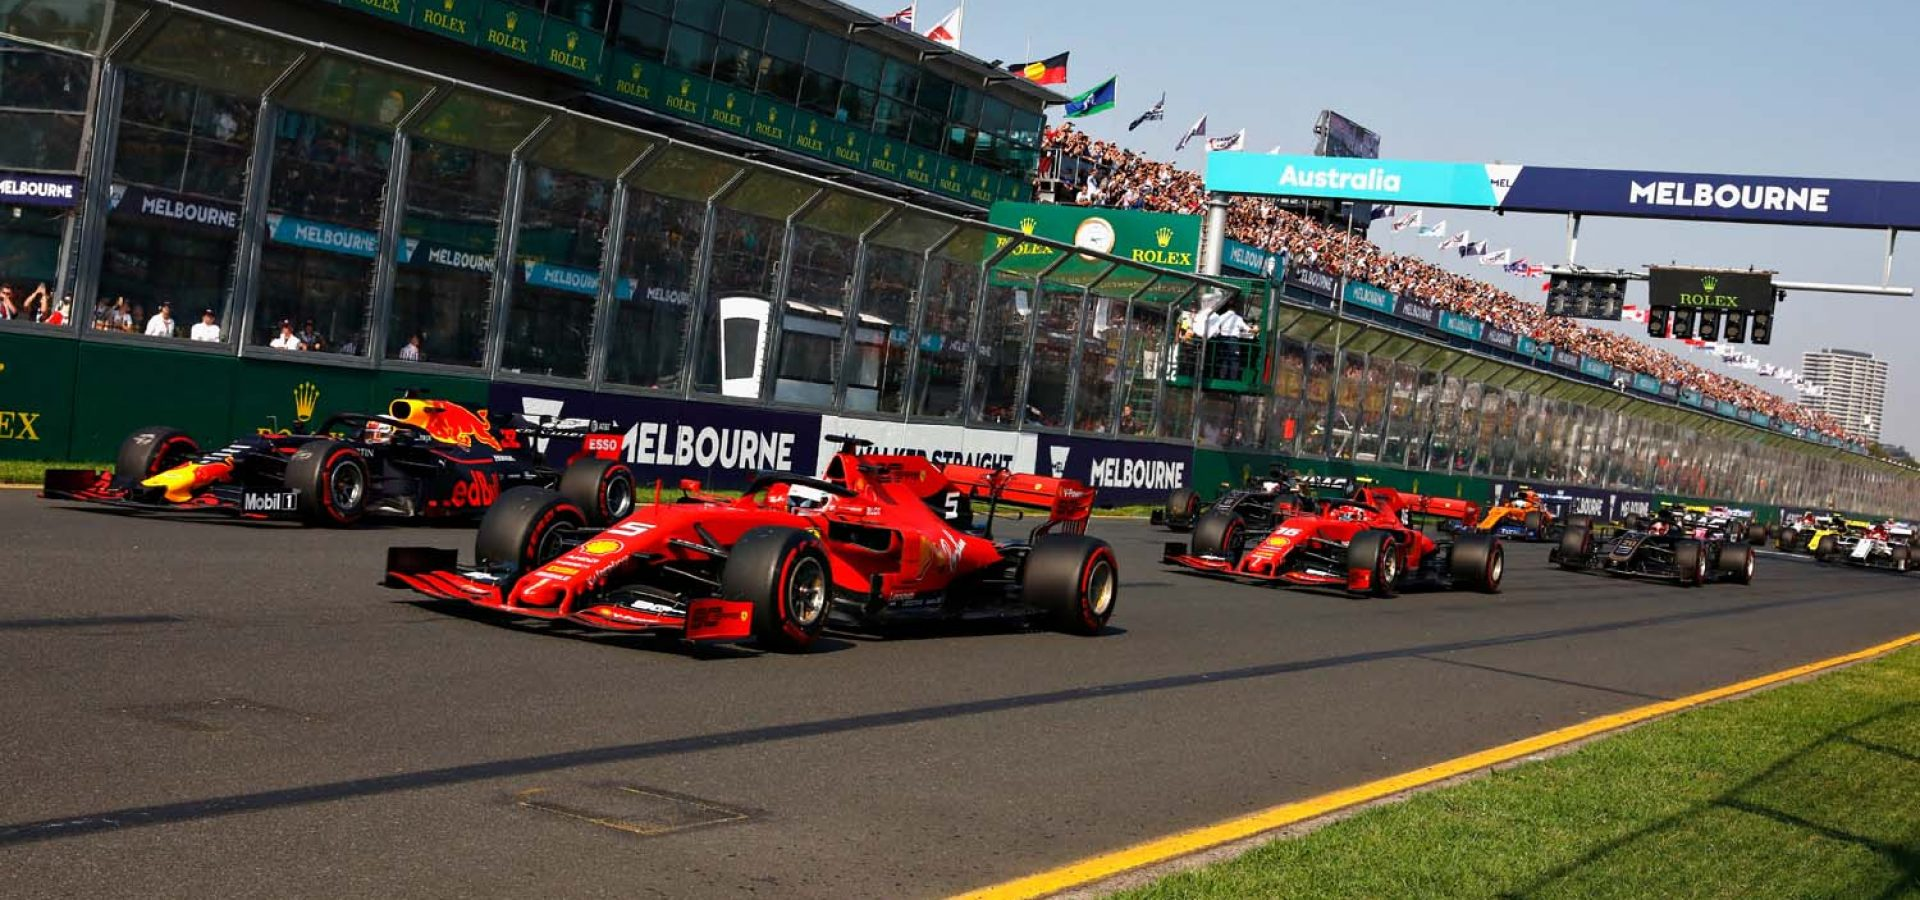 MELBOURNE, AUSTRALIA - MARCH 17: Sebastian Vettel of Germany driving the (5) Scuderia Ferrari SF90 battles with Max Verstappen of the Netherlands driving the (33) Aston Martin Red Bull Racing RB15 at the start during the F1 Grand Prix of Australia at Melbourne Grand Prix Circuit on March 17, 2019 in Melbourne, Australia.  (Photo by Will Taylor-Medhurst/Getty Images) // Getty Images / Red Bull Content Pool  // AP-1YRC96EYW1W11 // Usage for editorial use only // Please go to www.redbullcontentpool.com for further information. //